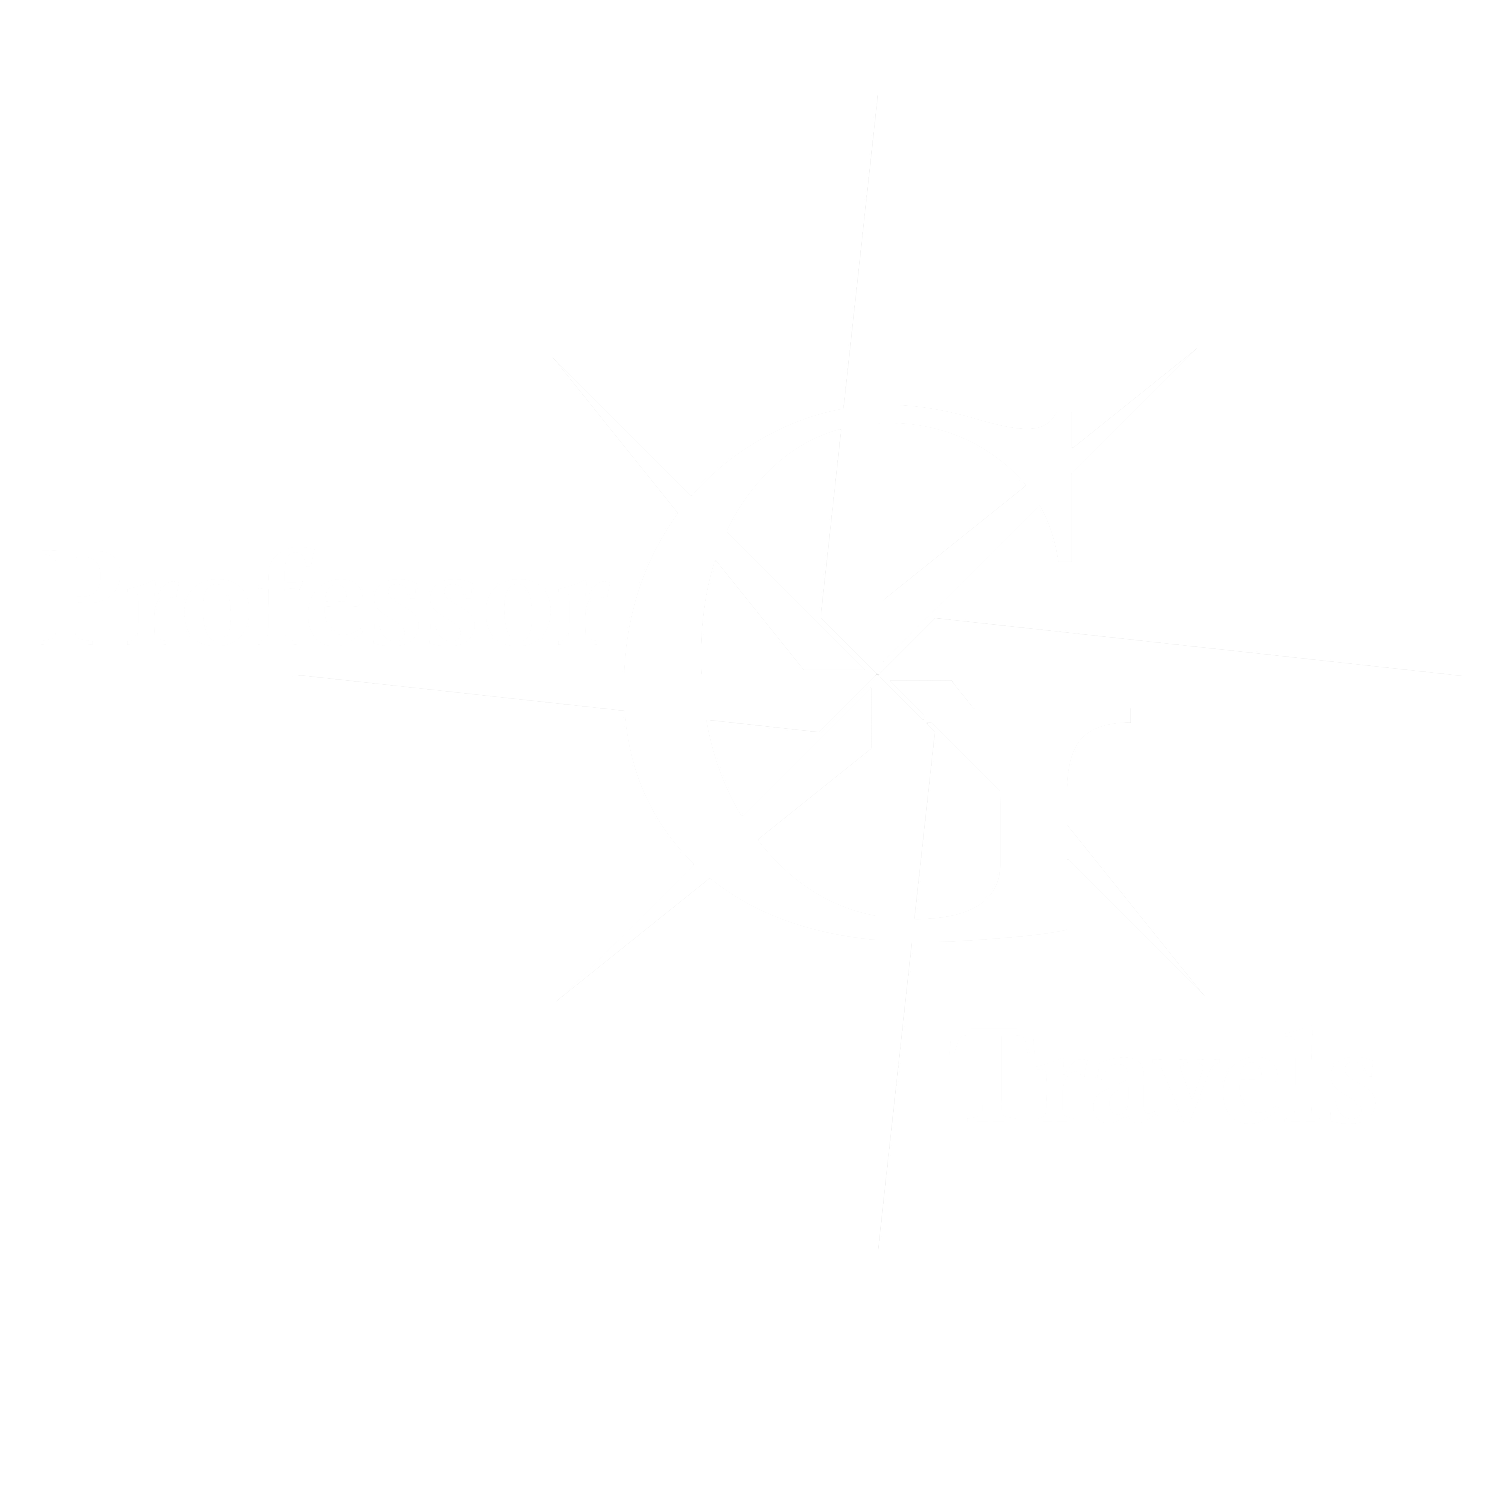 Professor G. Travels